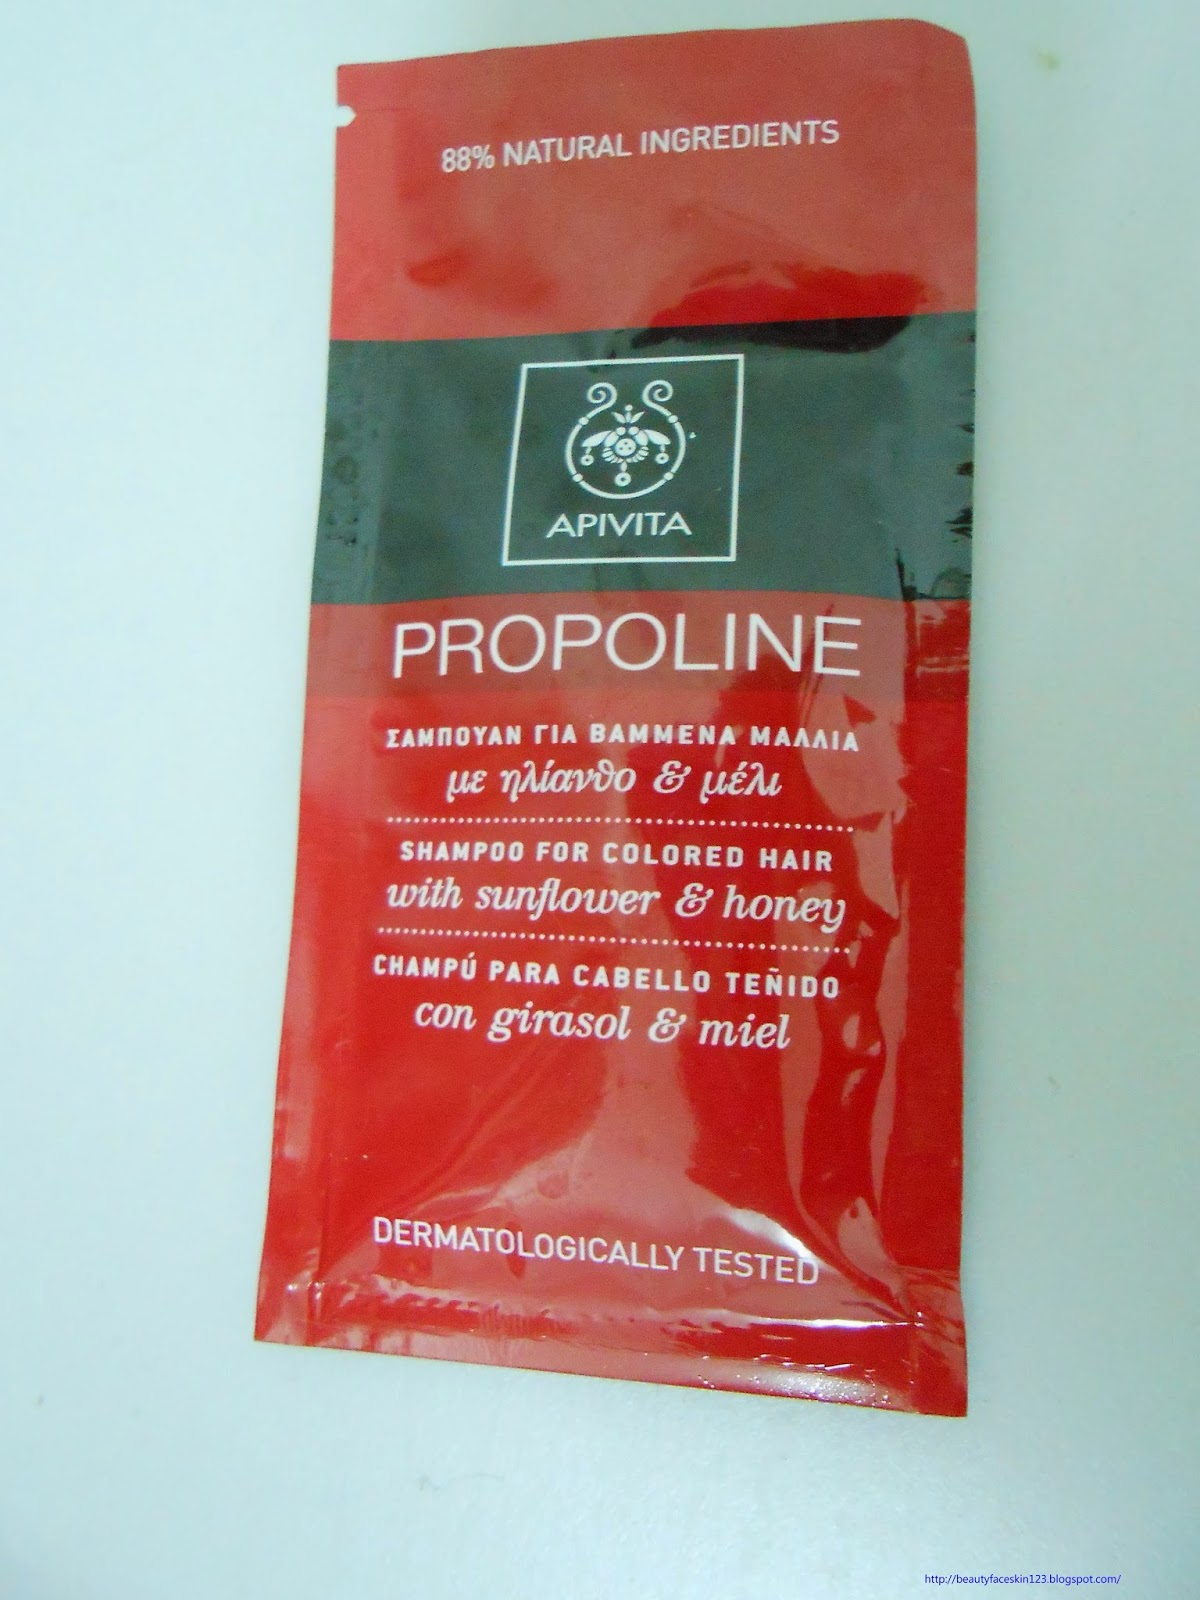 ARPIVITA PROPOLINE SHAMPOO FOR COLORED HAIR